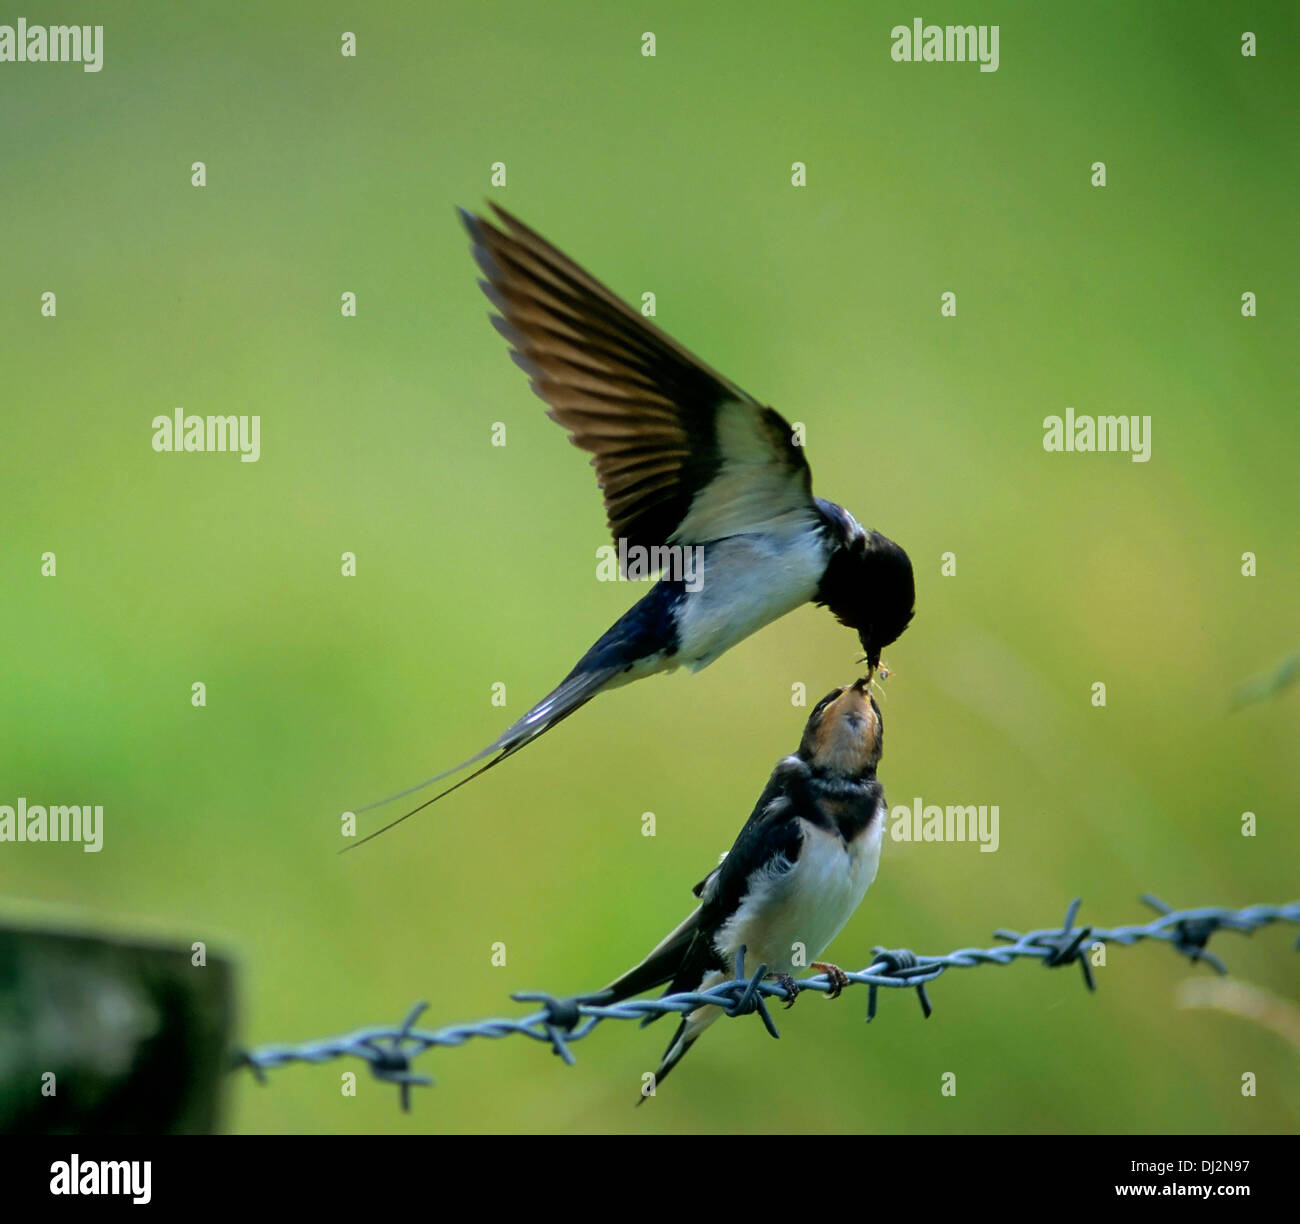 Barn Swallow (Hirundo rustica), Rauchschwalbe (Hirundo rustica) Stock Photo